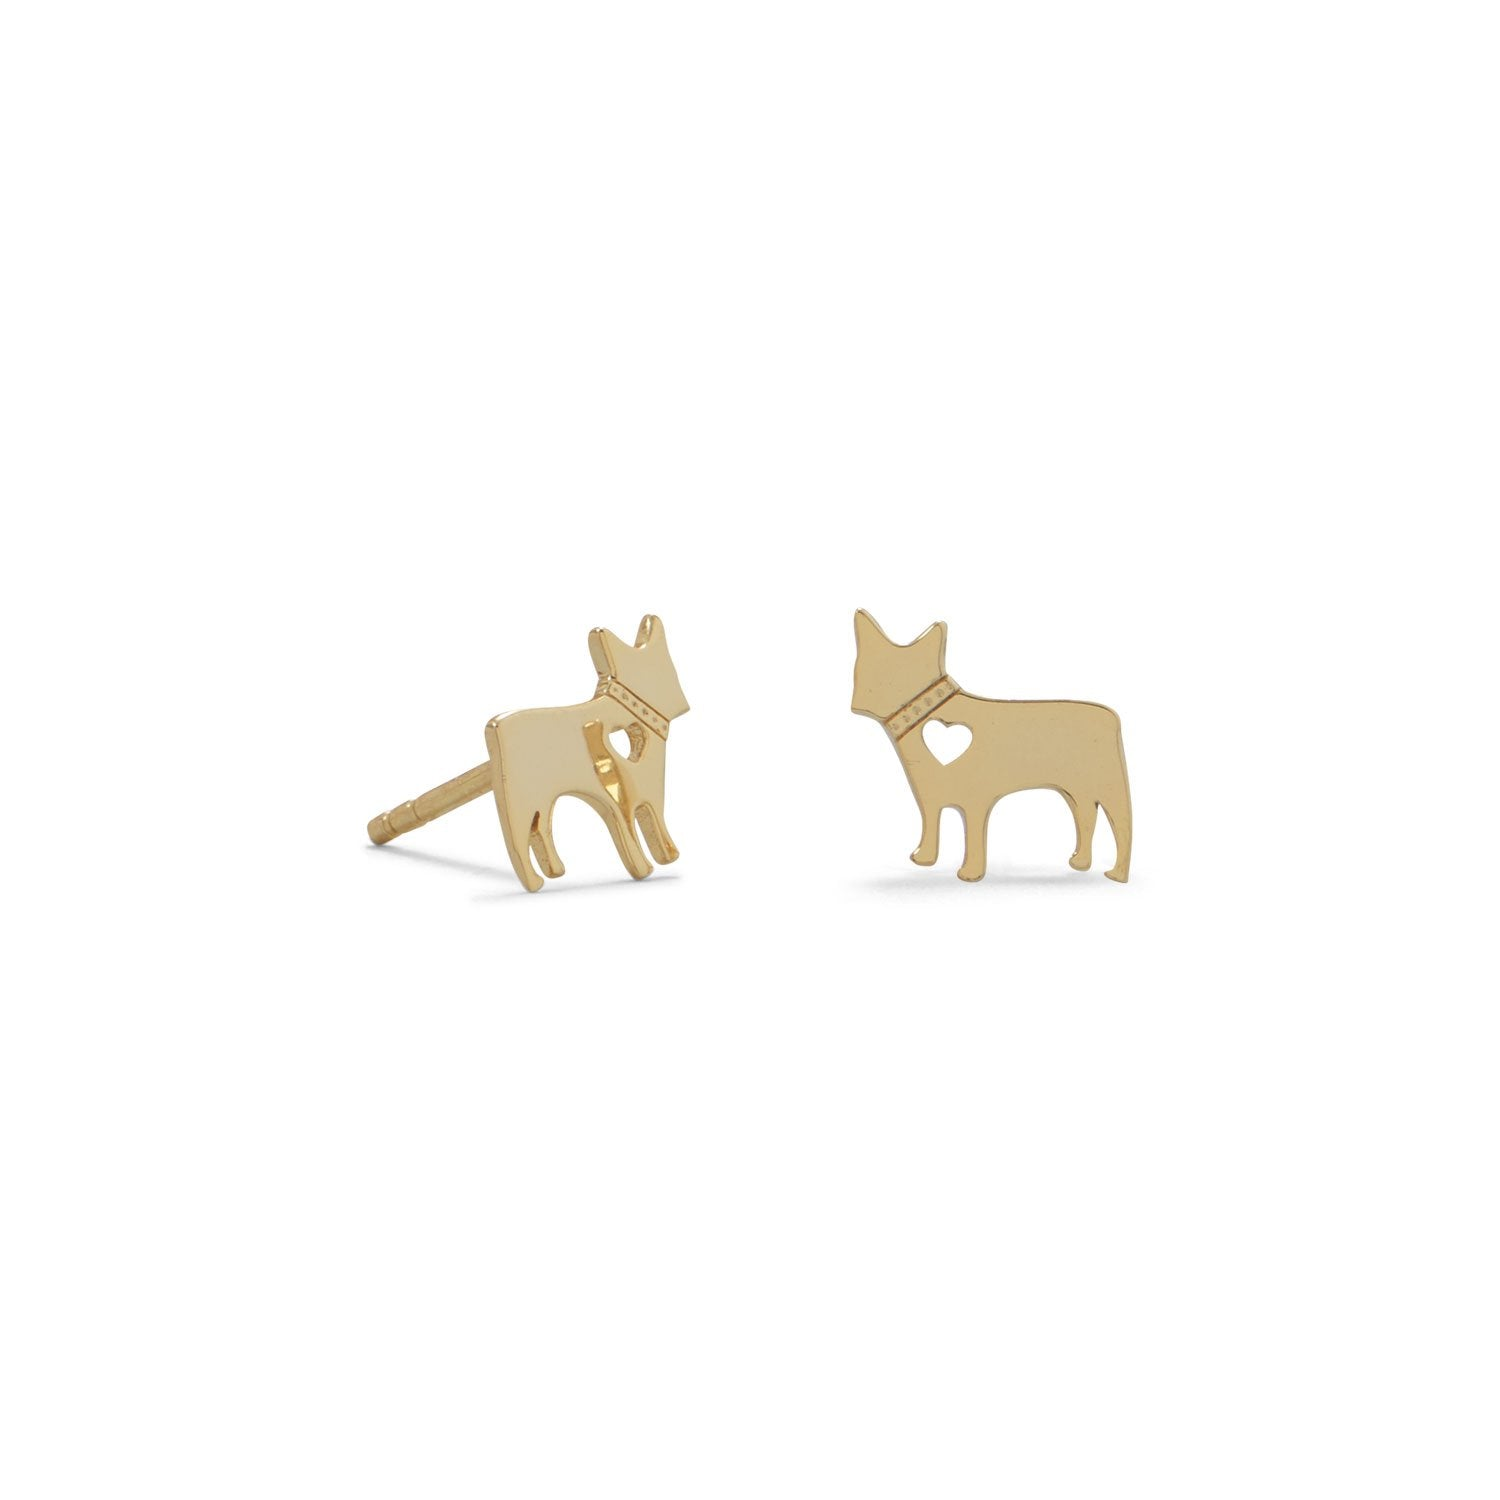 14 Karat Gold Plated Darling Dog Studs - Rocky Mt. Discount Outlet